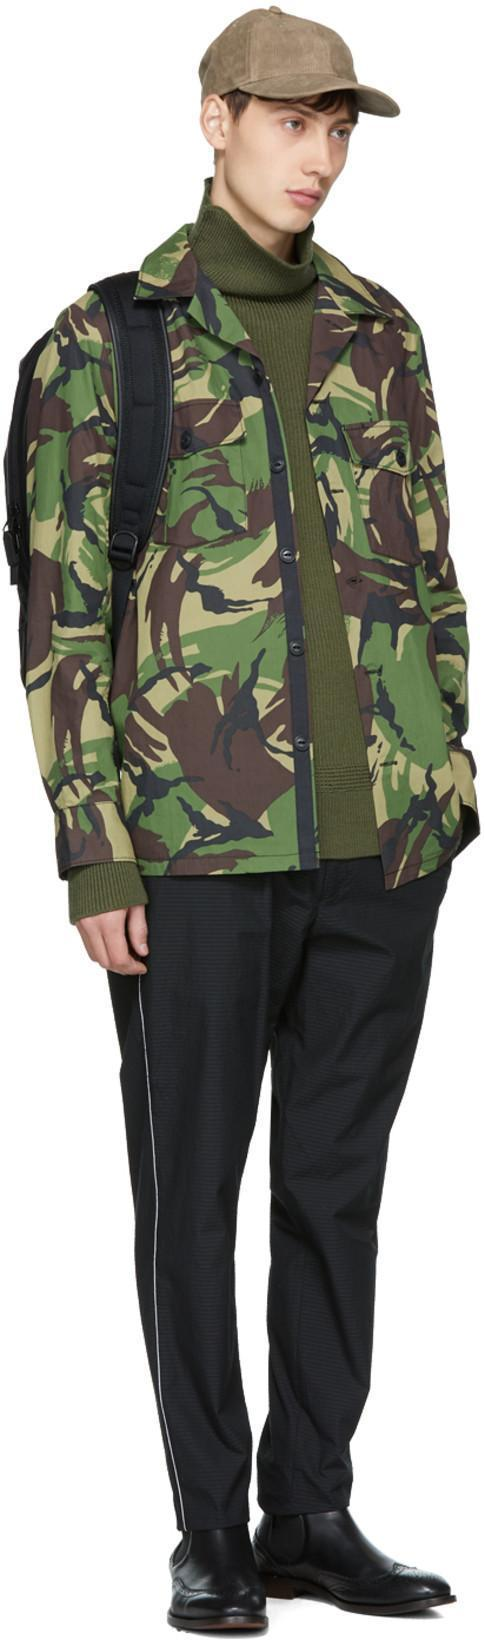 01e04cf8 Rag & Bone Heath Camouflage-Print Cotton-Blend Shirt Jacket In Green ...